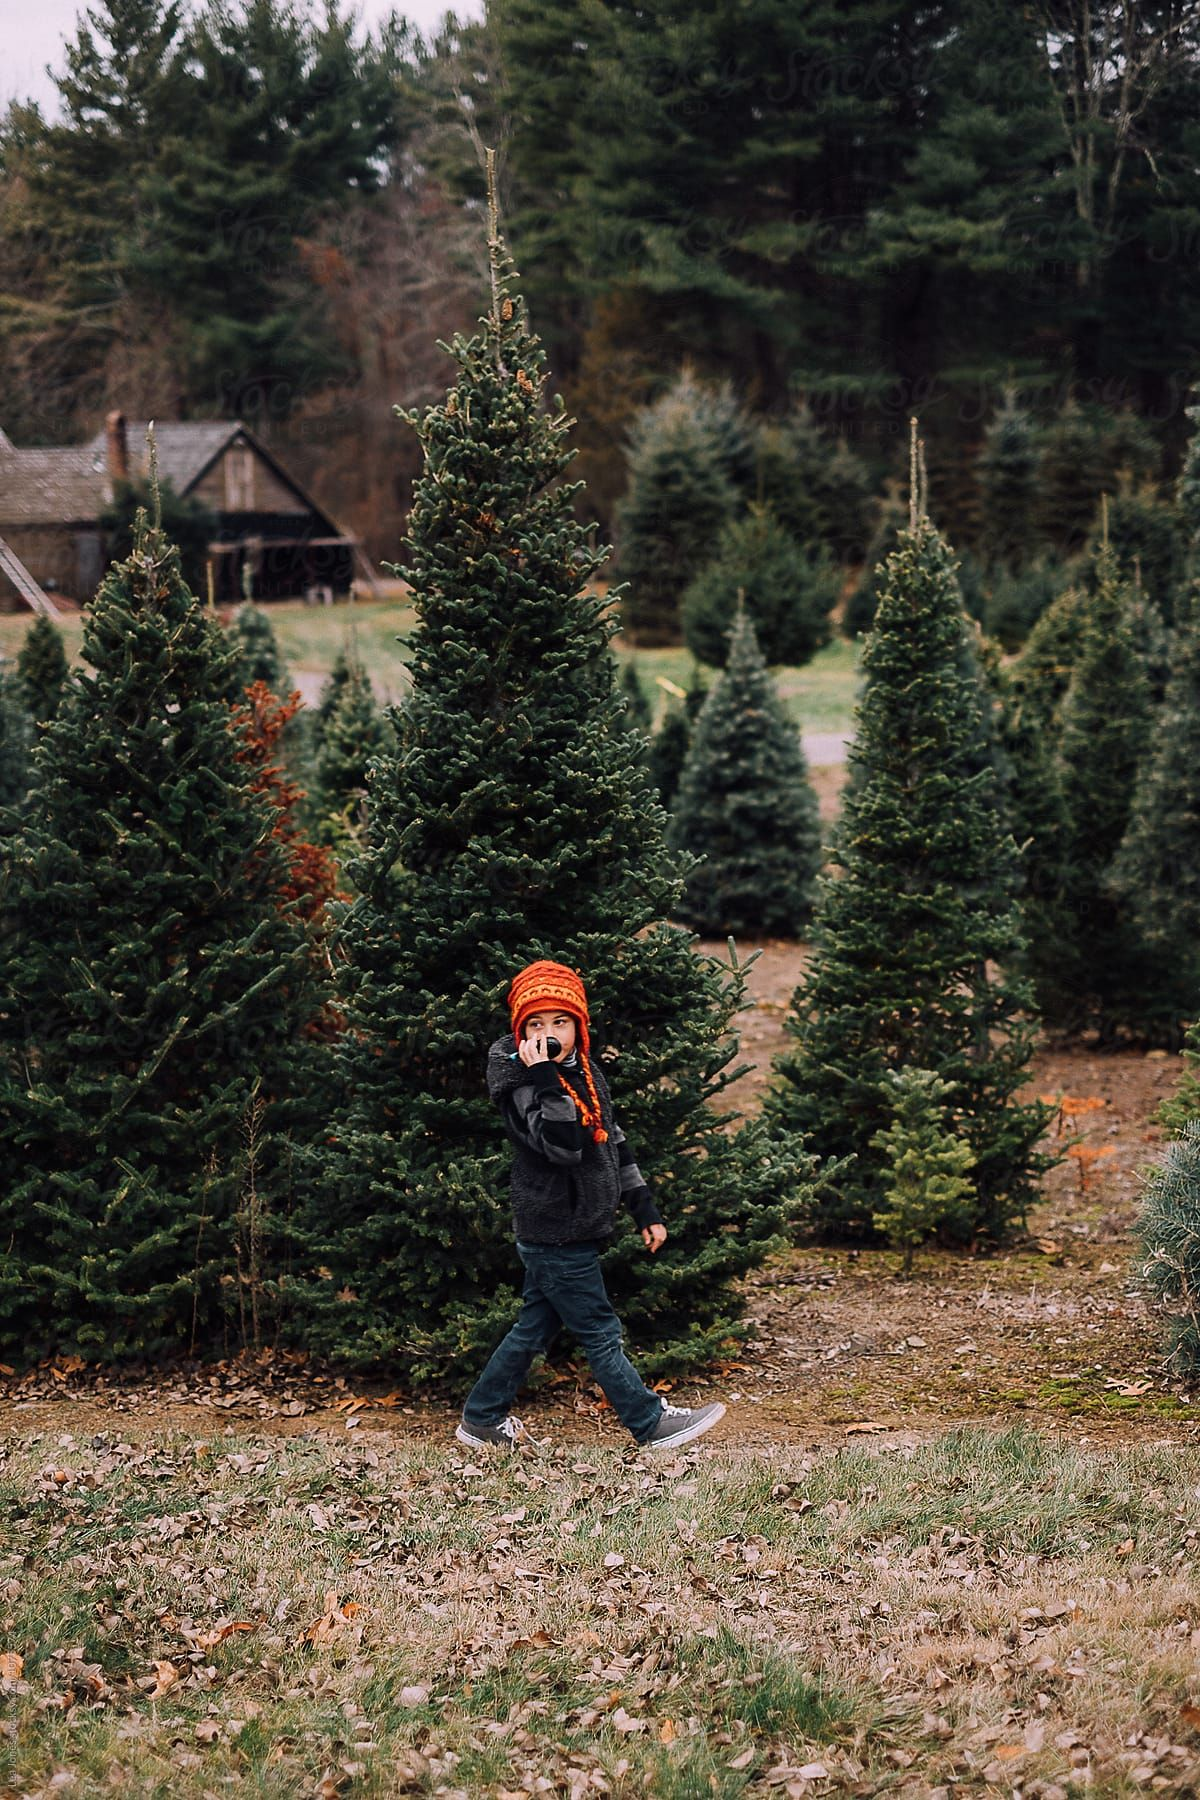 Stock Photo Of Child Walking In Christmas Tree Farm Stocksy United Tree Farms Christmas Tree Farm Tree